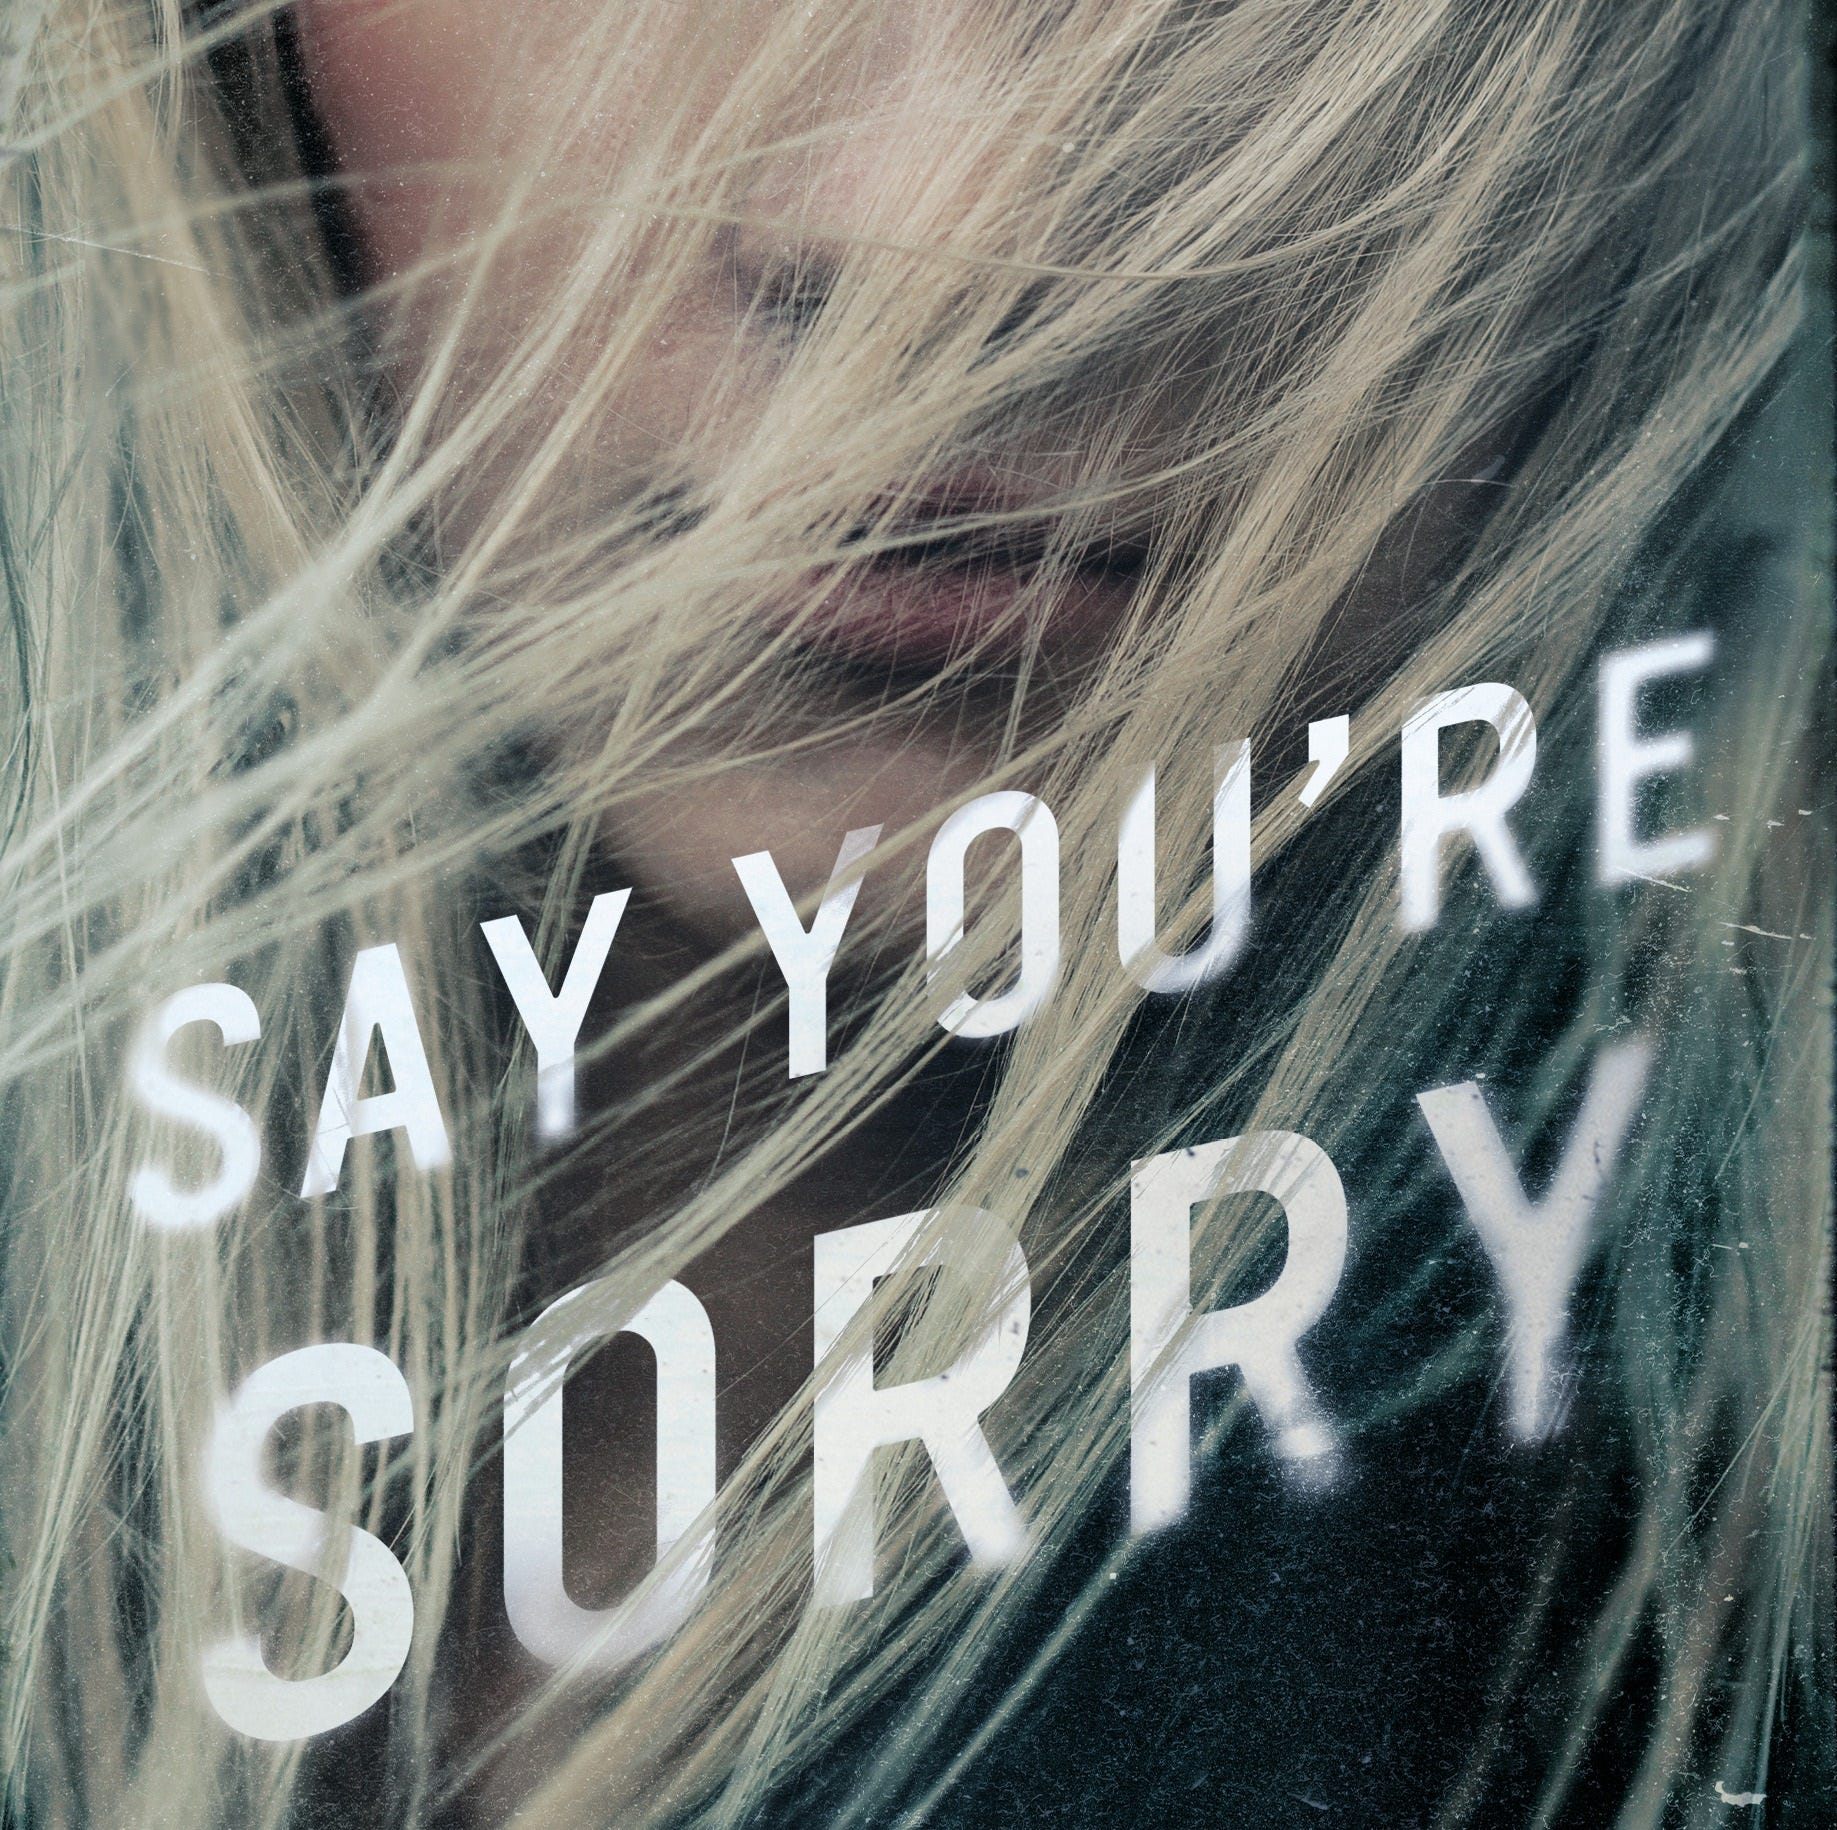 Here's why 'Say You're Sorry' by Karen Rose is the next 'Gone Girl'… sort of